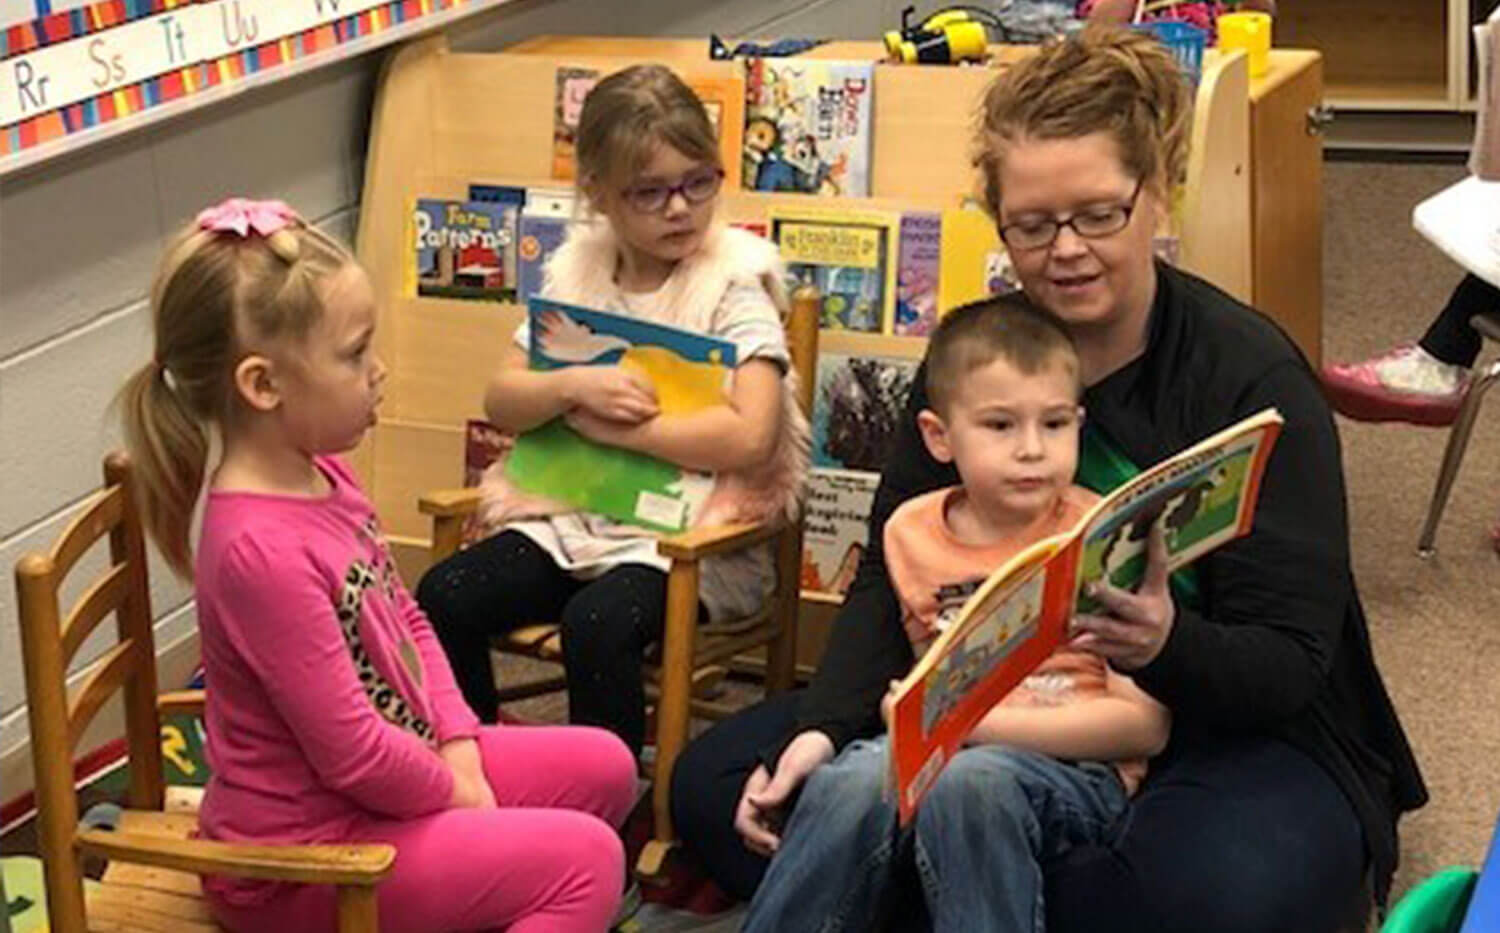 Minnewaska area preschool students reaching with their teacher